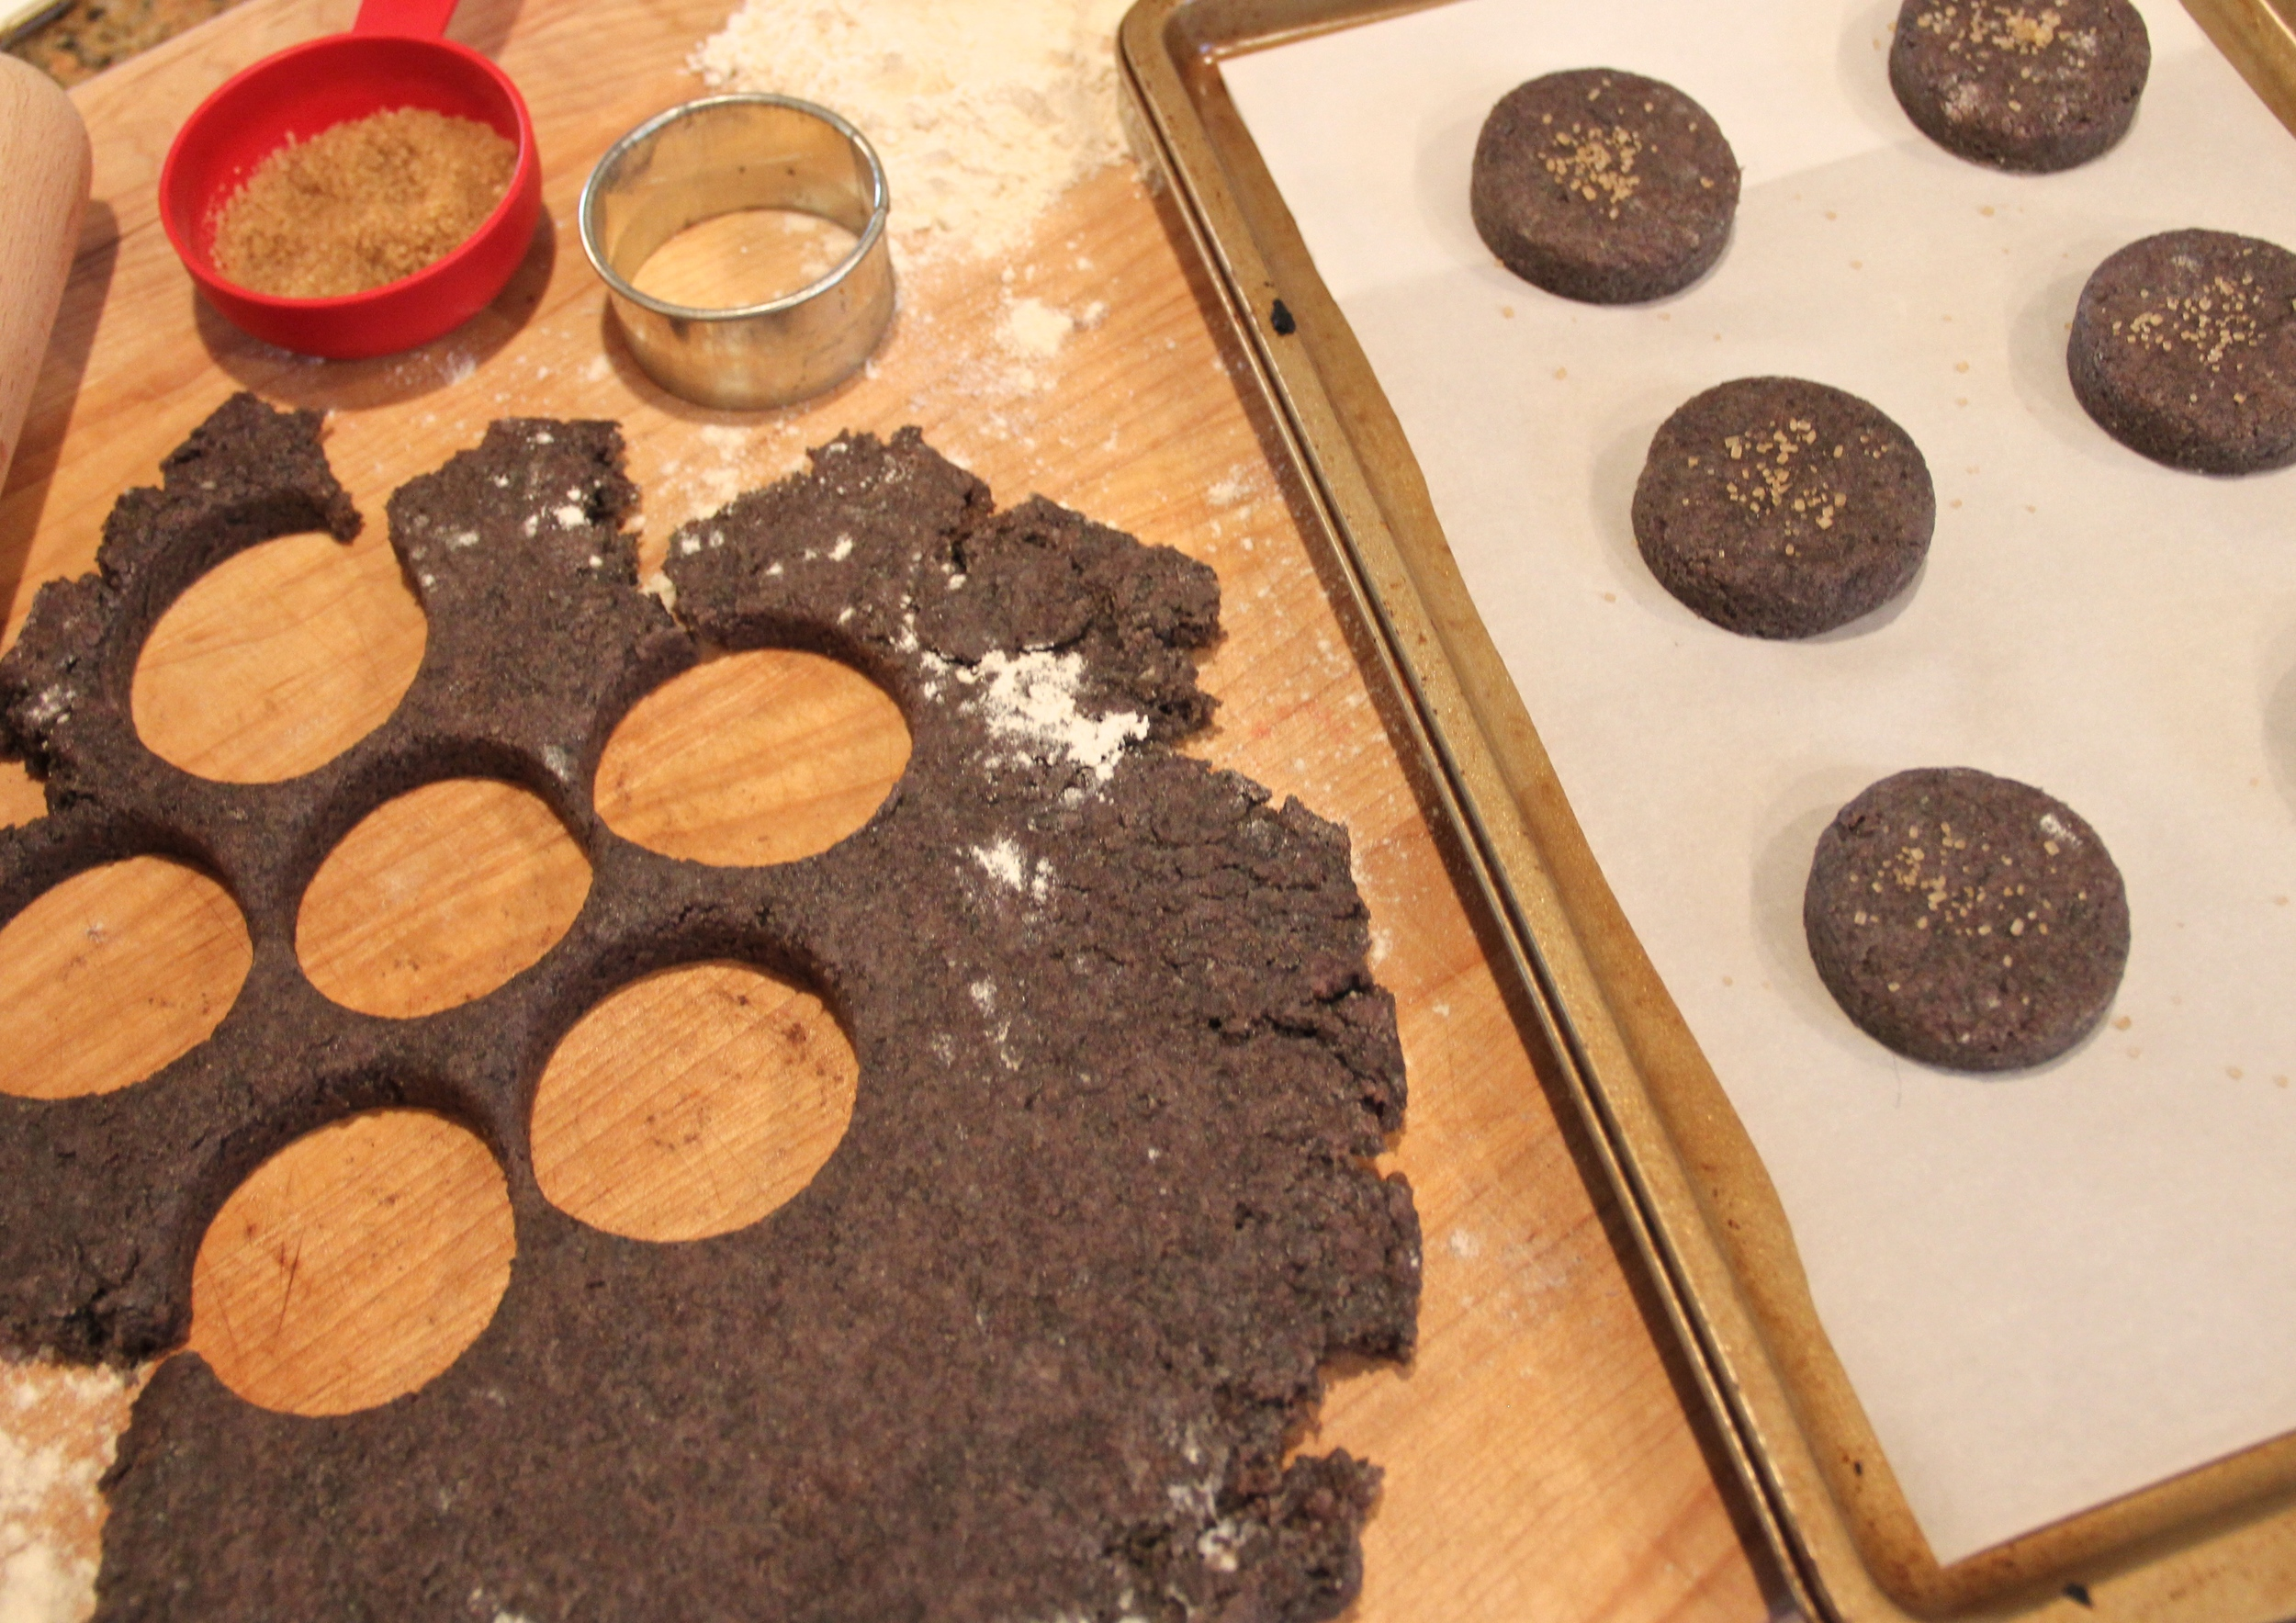 this dough gets pretty dark once you add liquid to it...but don't worry, they still taste amazing!